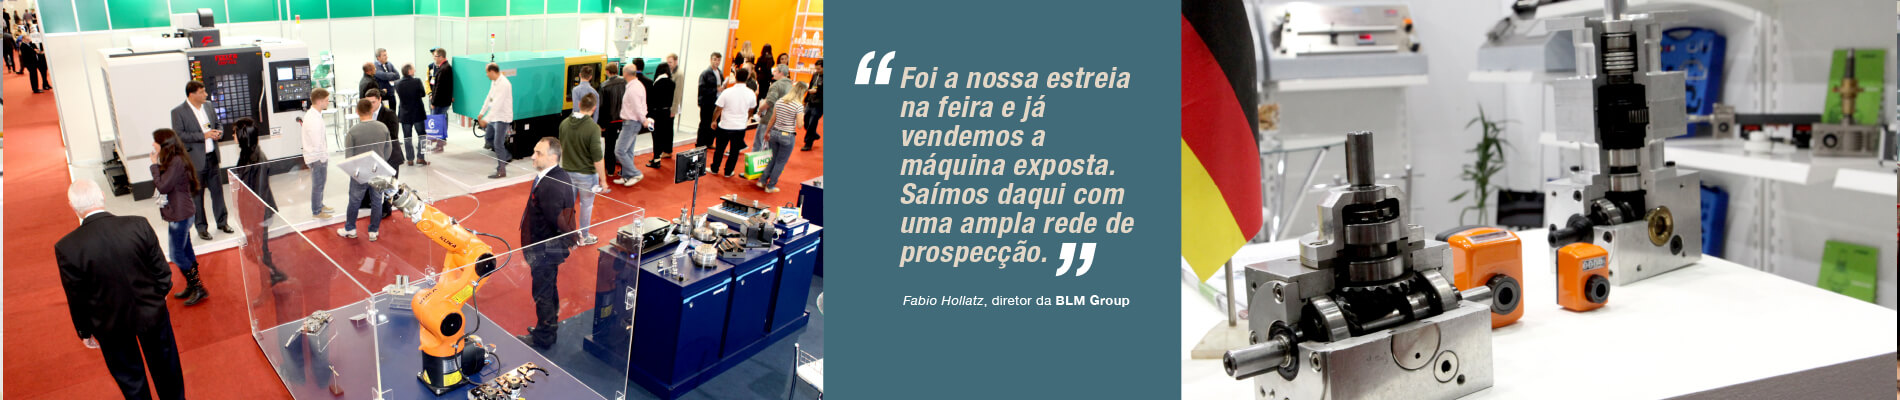 intermach-expositor-blm